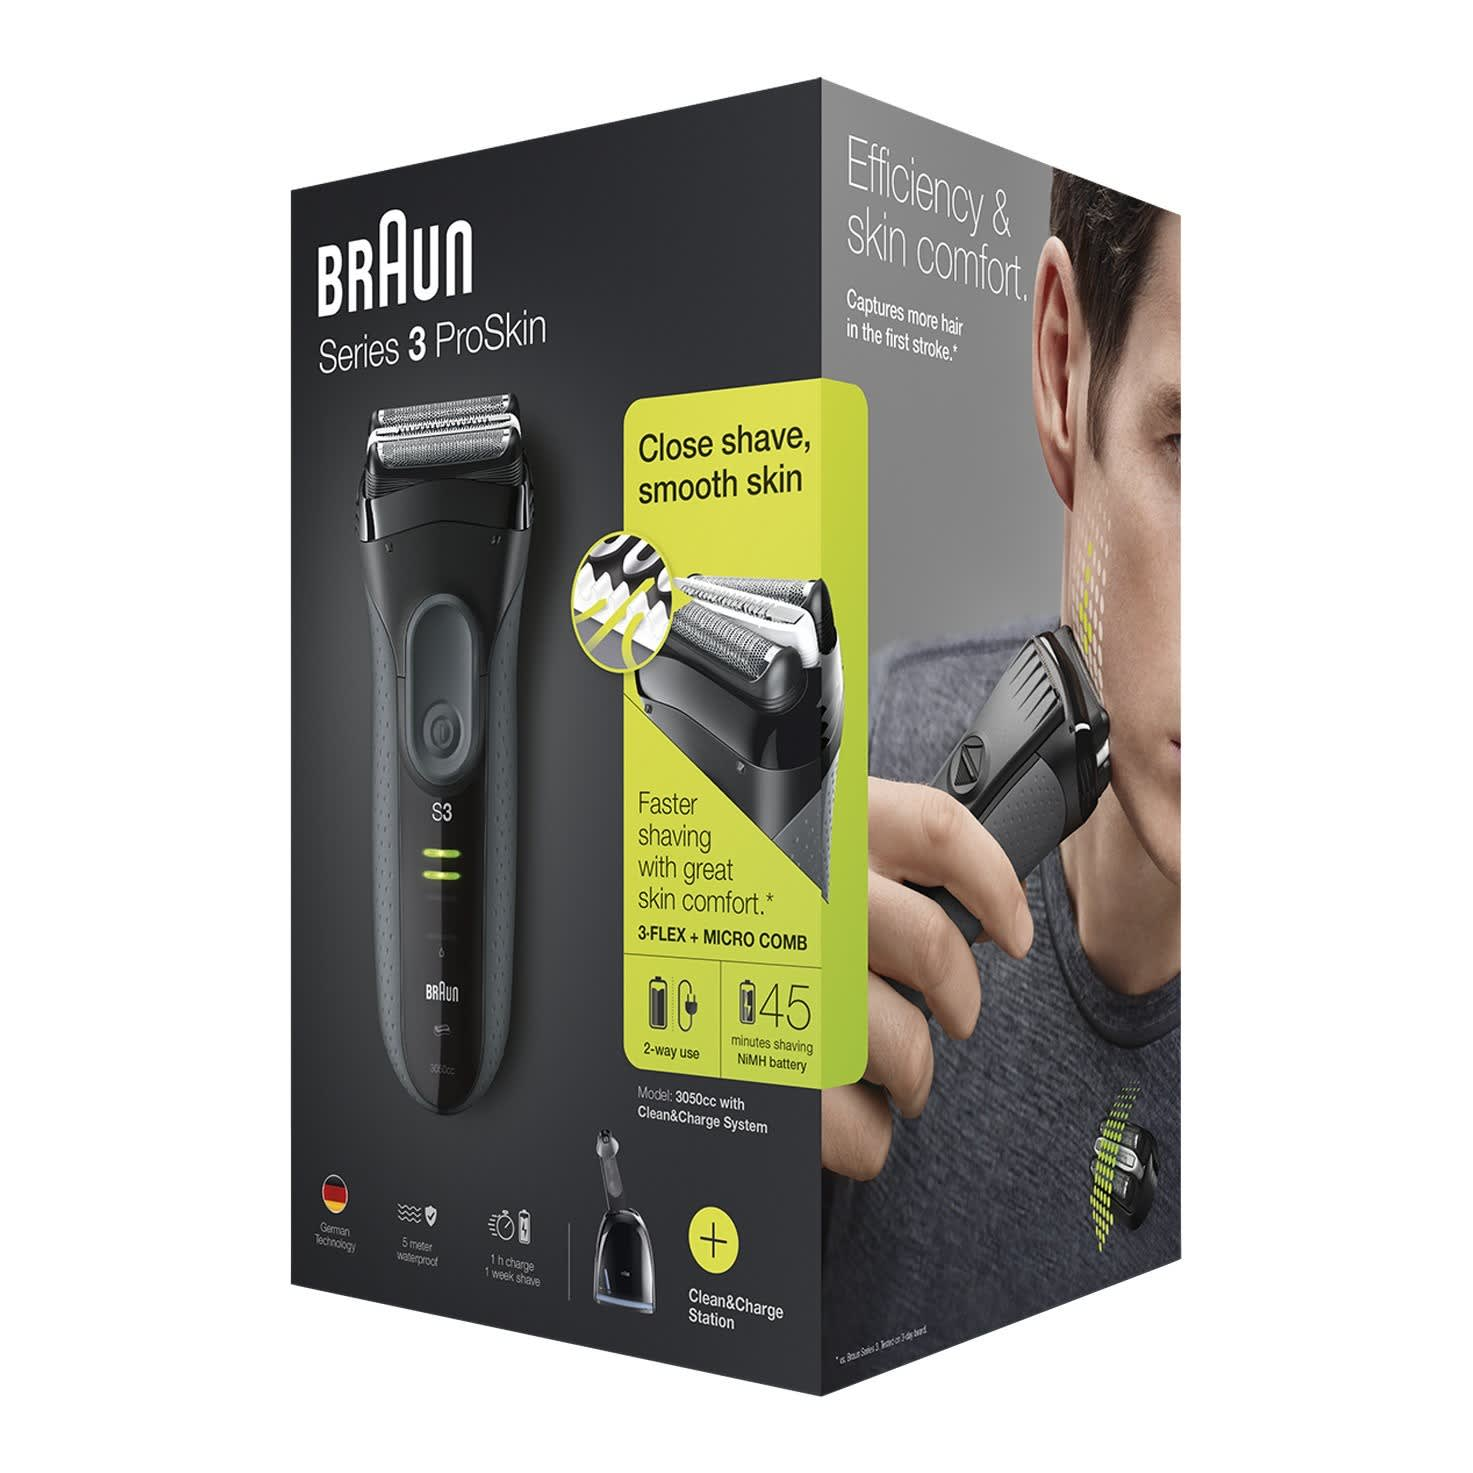 Series 3 ProSkin 3050cc grey - packaging